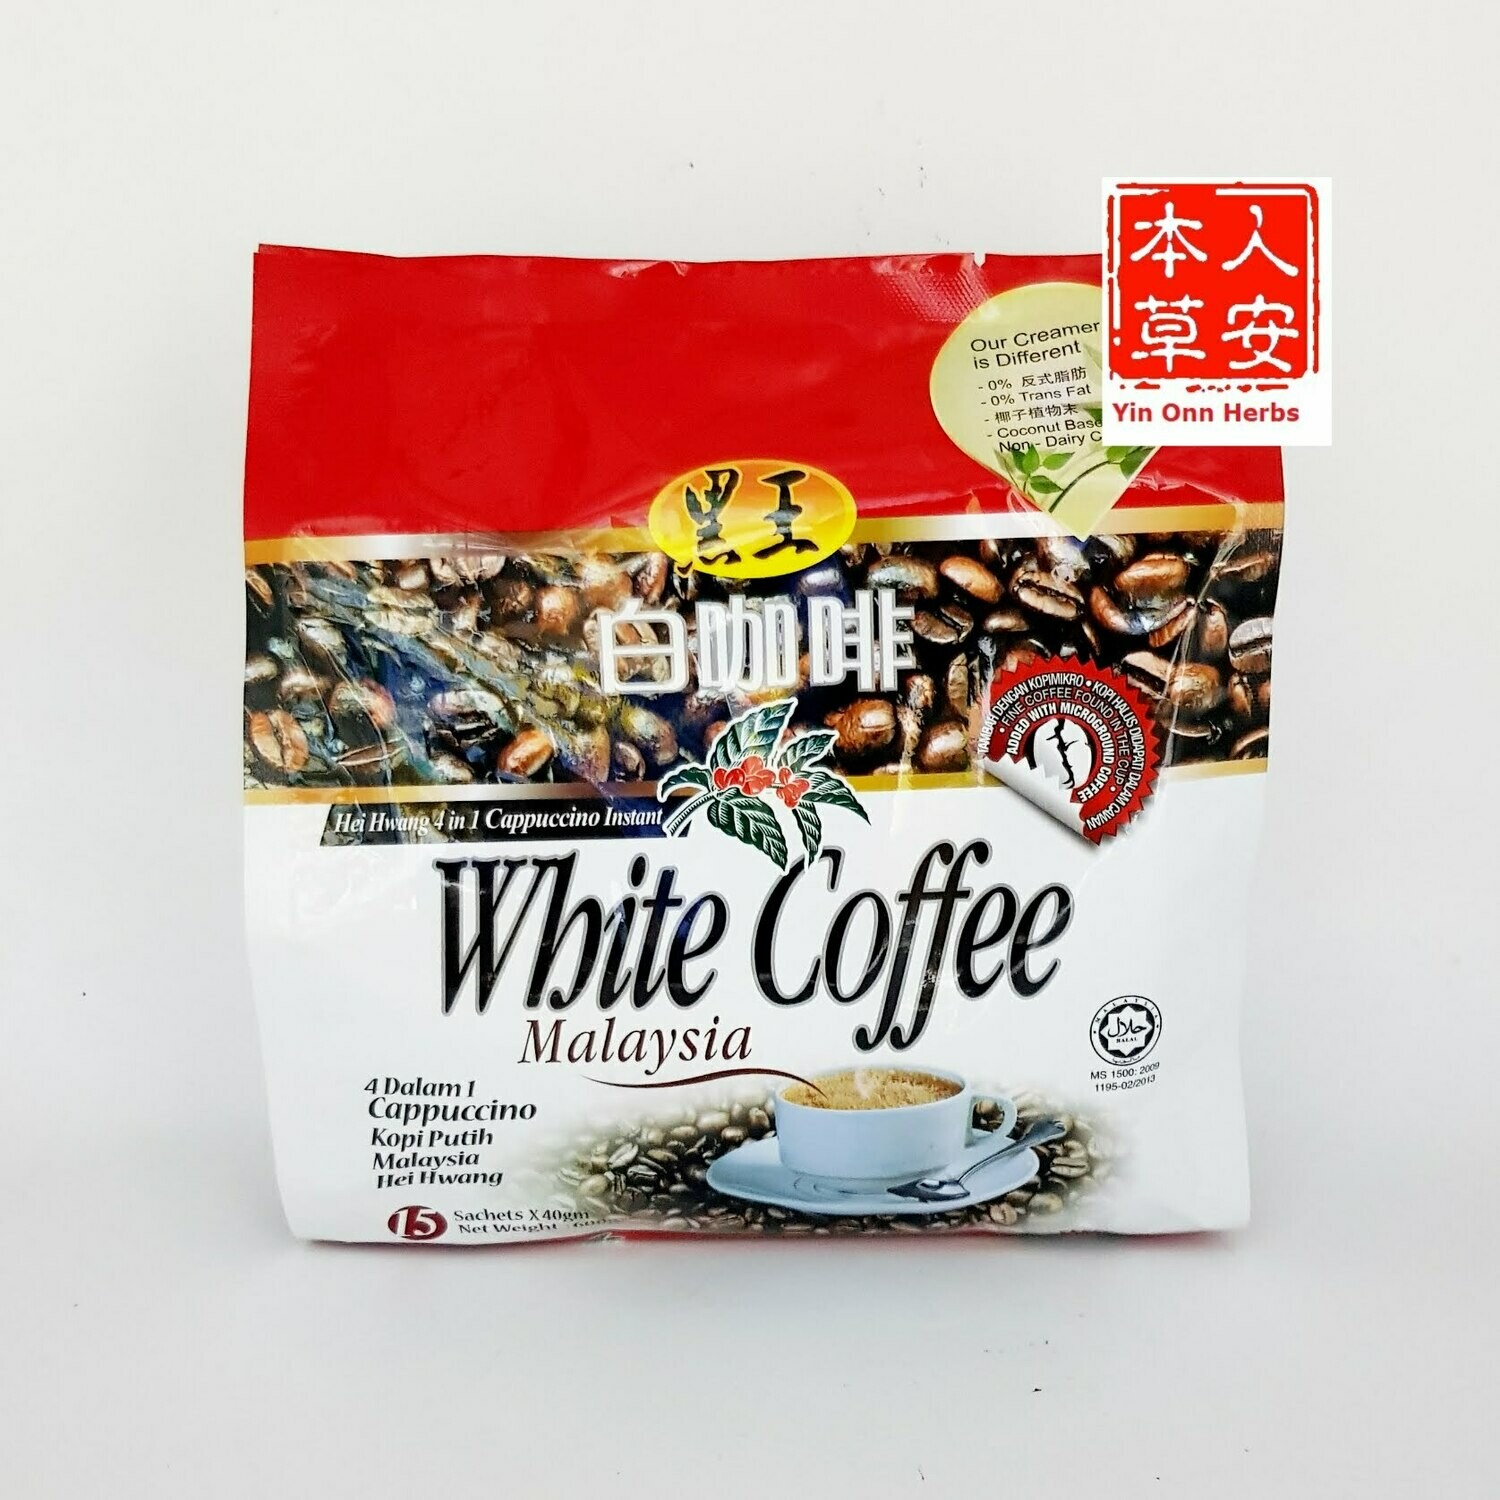 黑王4in1特浓白咖啡 40gmX15's Hei Hwang 4in1 Cappuccino White Coffee